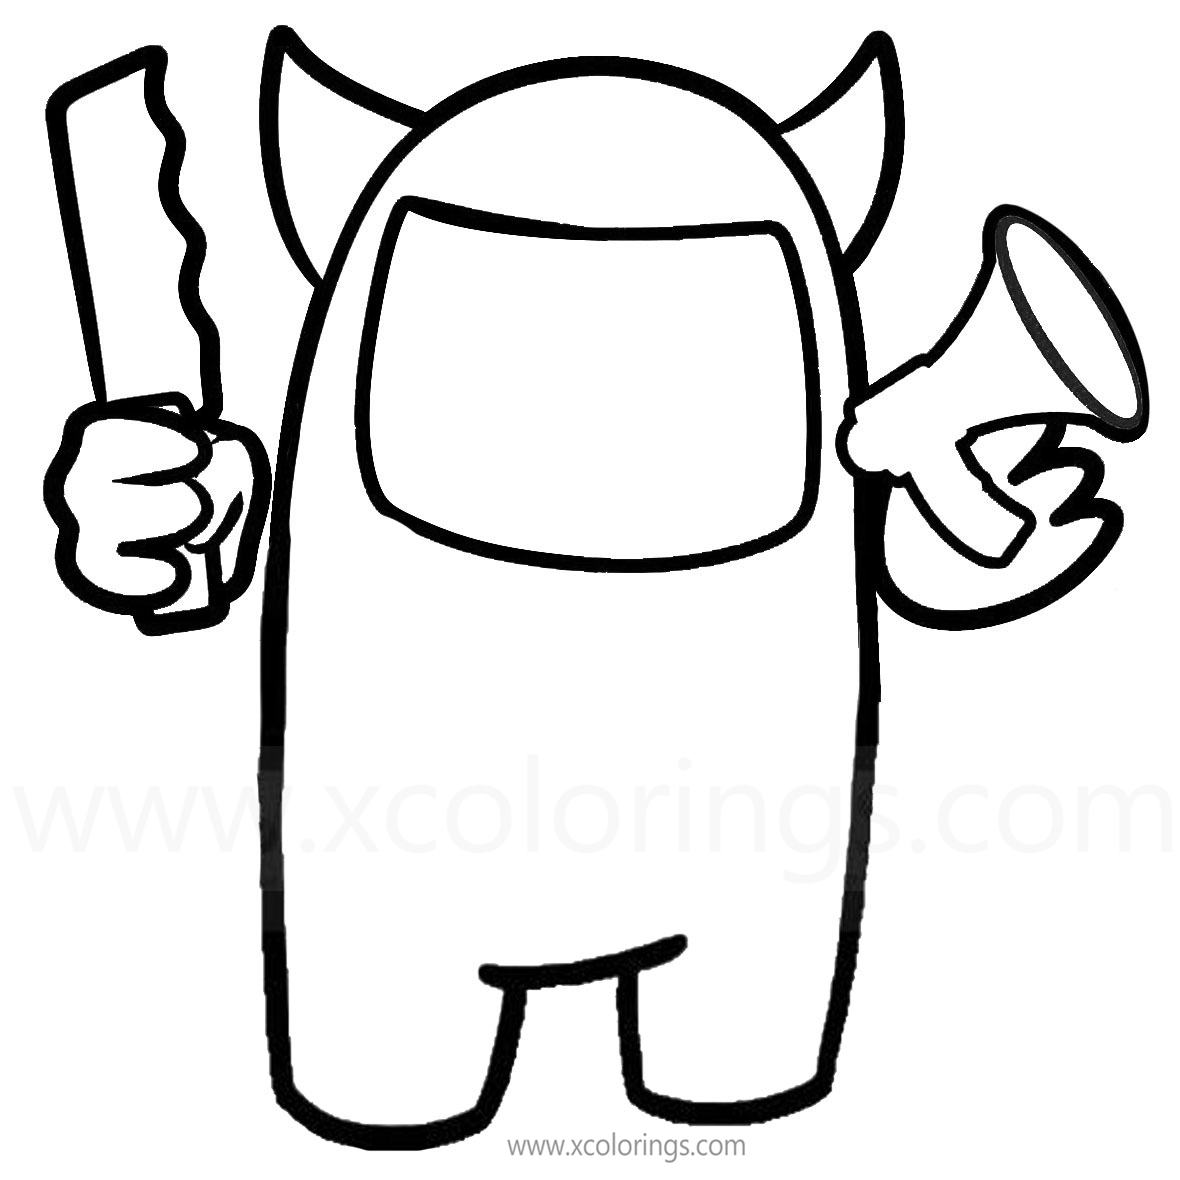 Free Among Us Coloring Pages Devil Skin printable